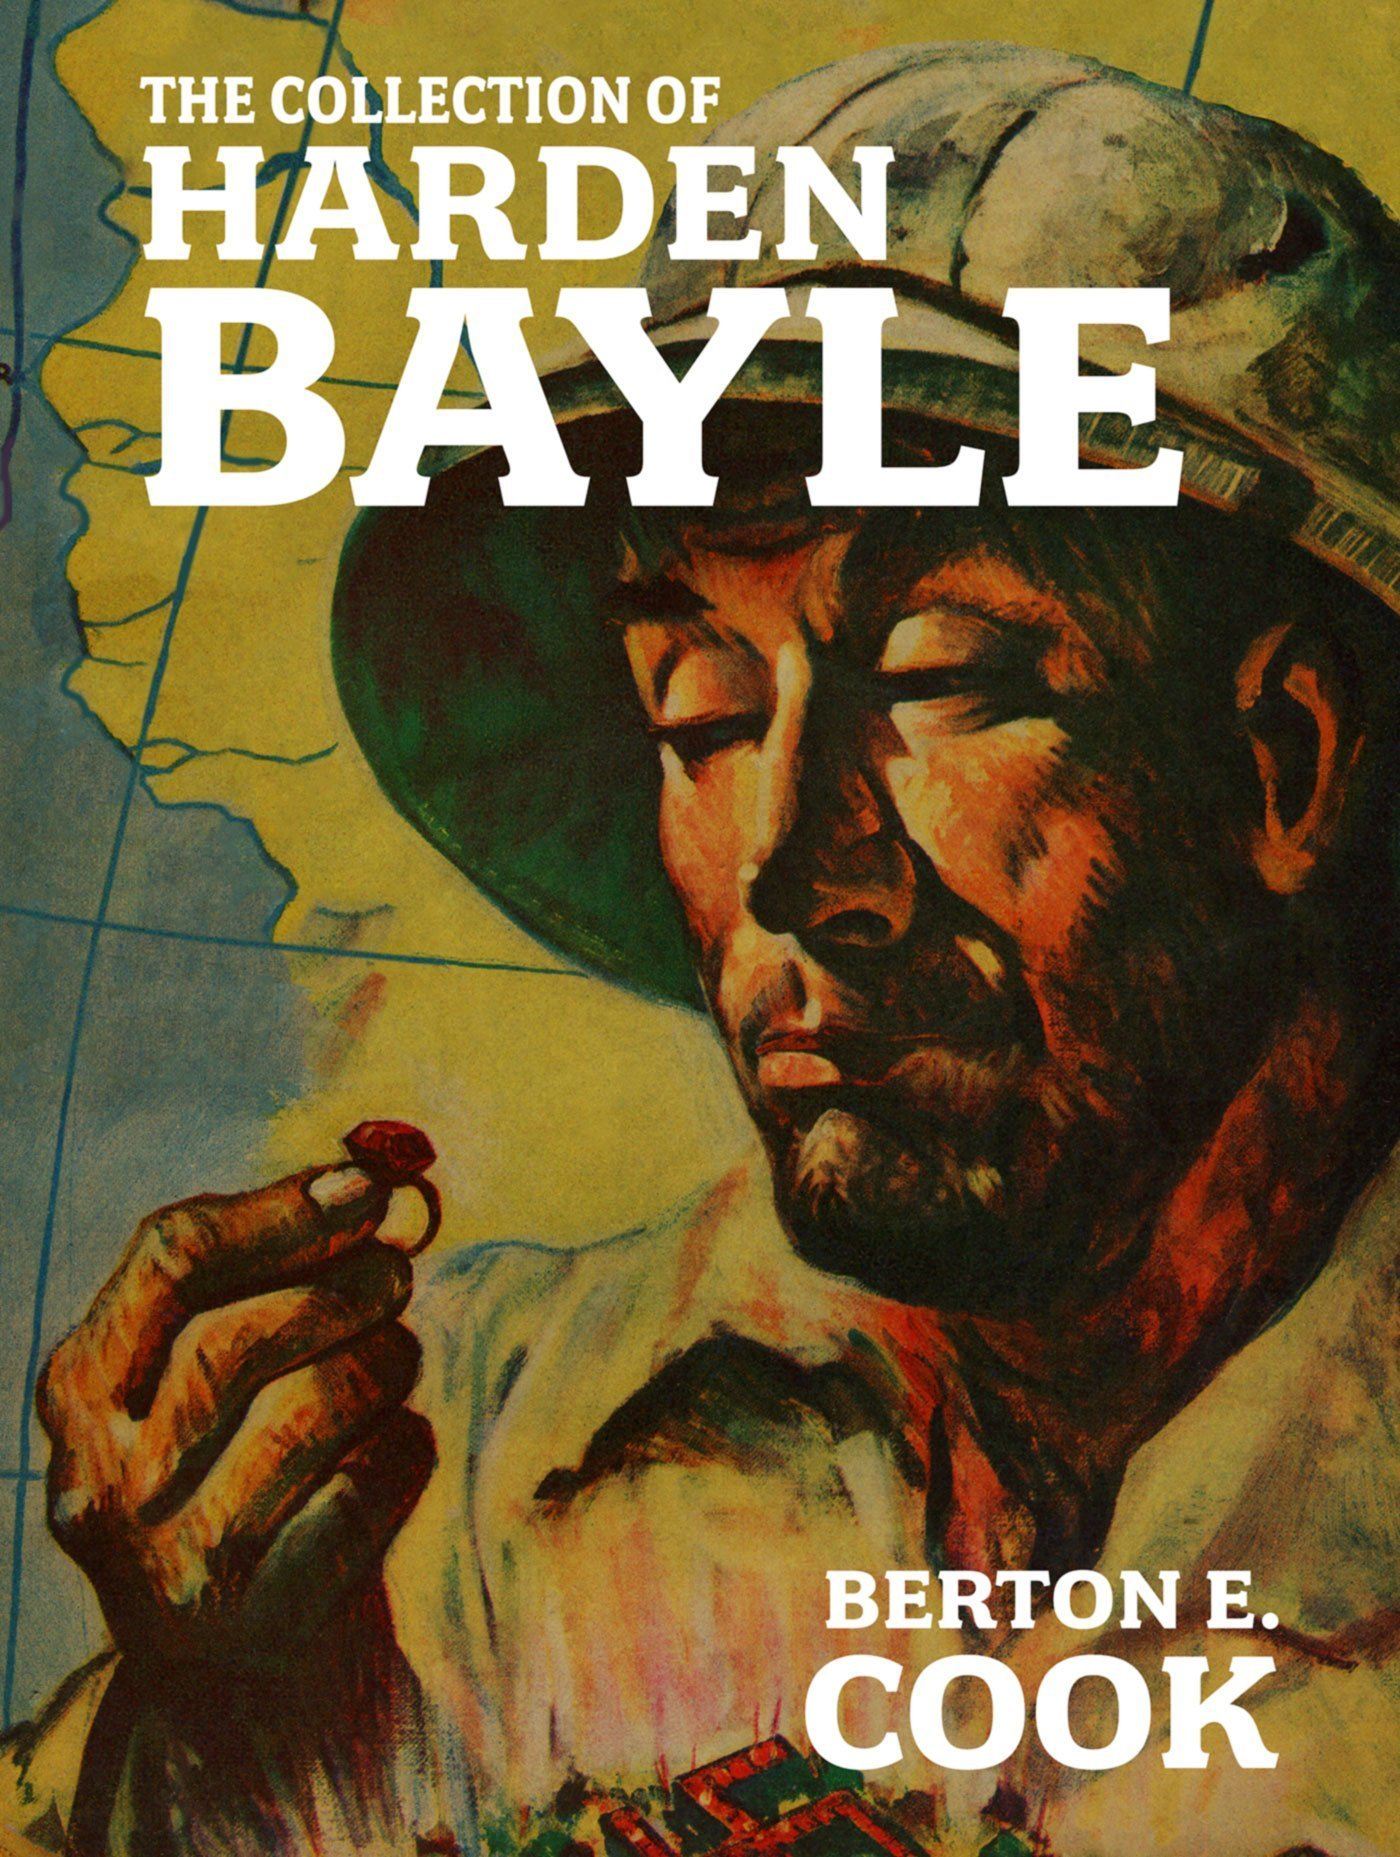 The collection of Harden Bayle - 25 stories in one volume from Altus Press